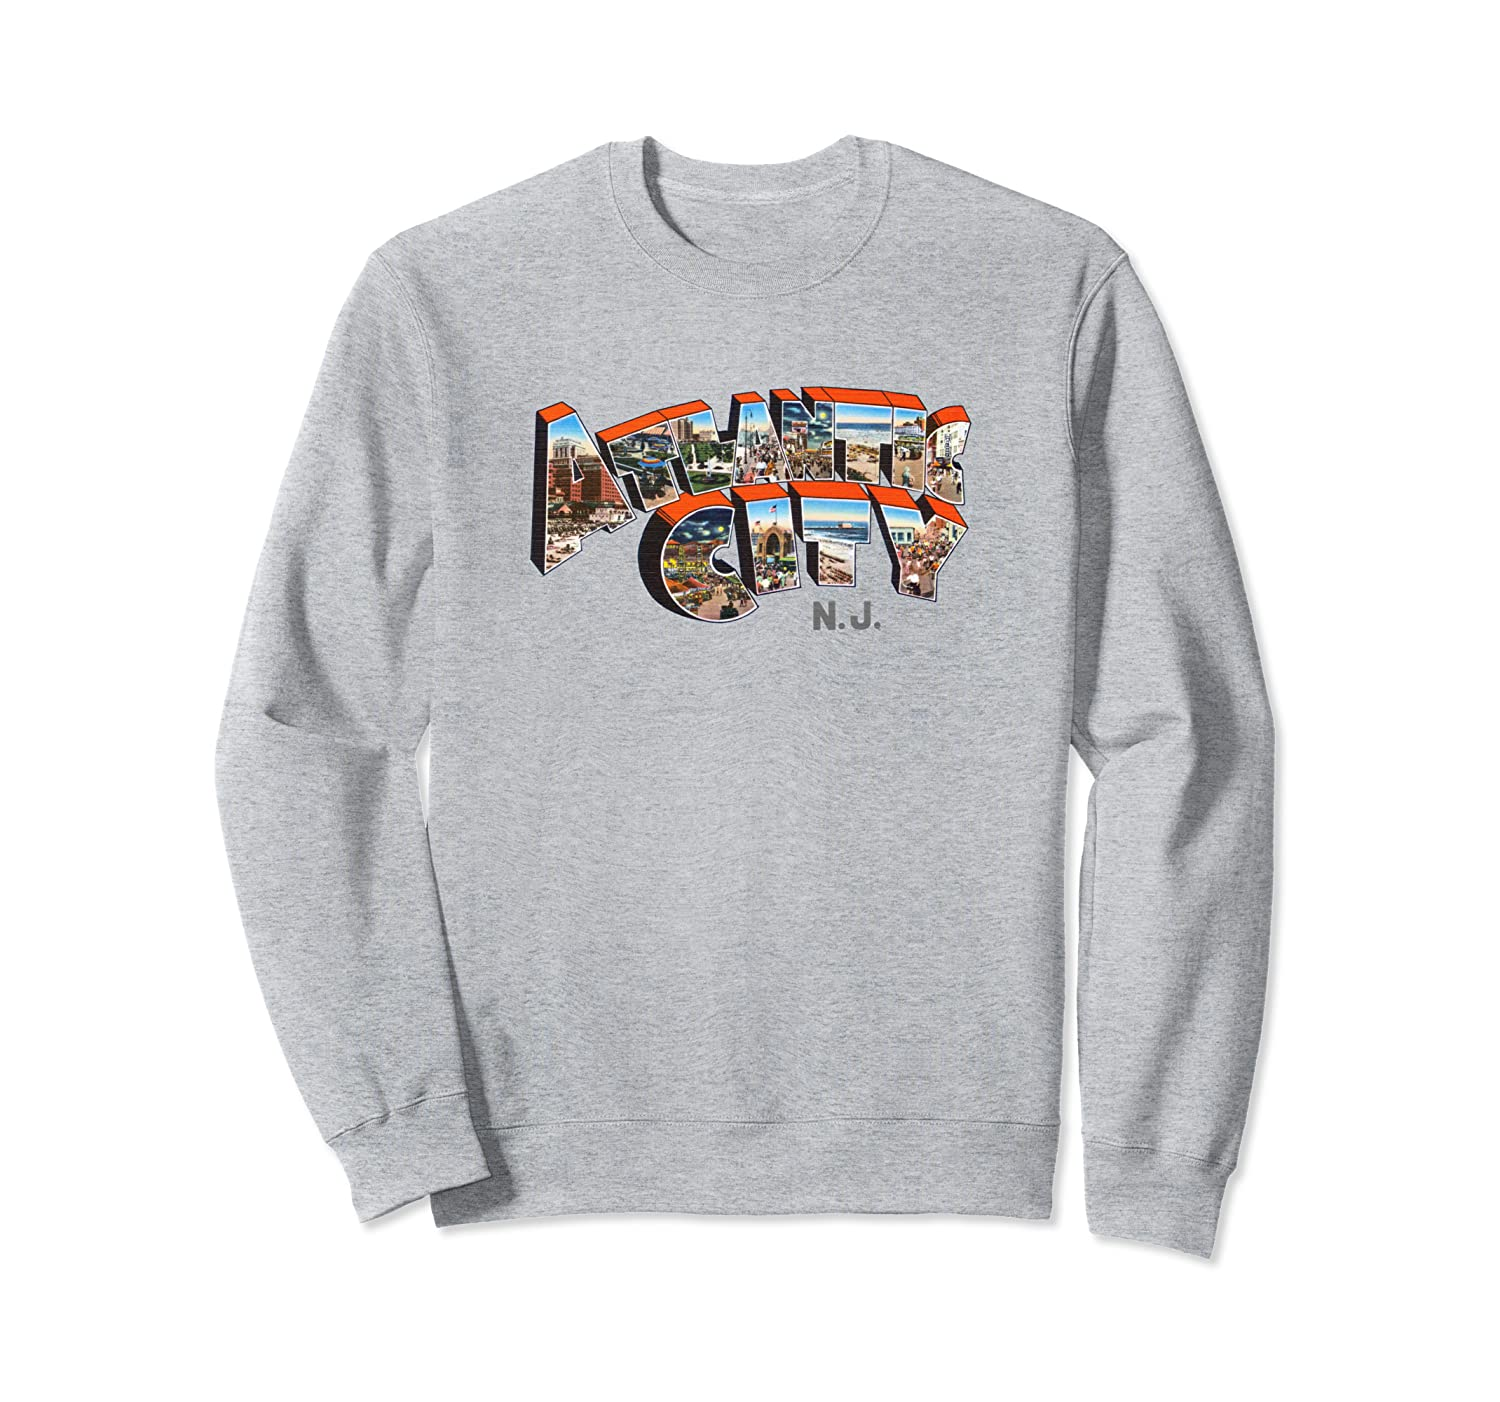 Atlantic City Sweatshirt Retro New Jersey NJ Souvenir Shirt